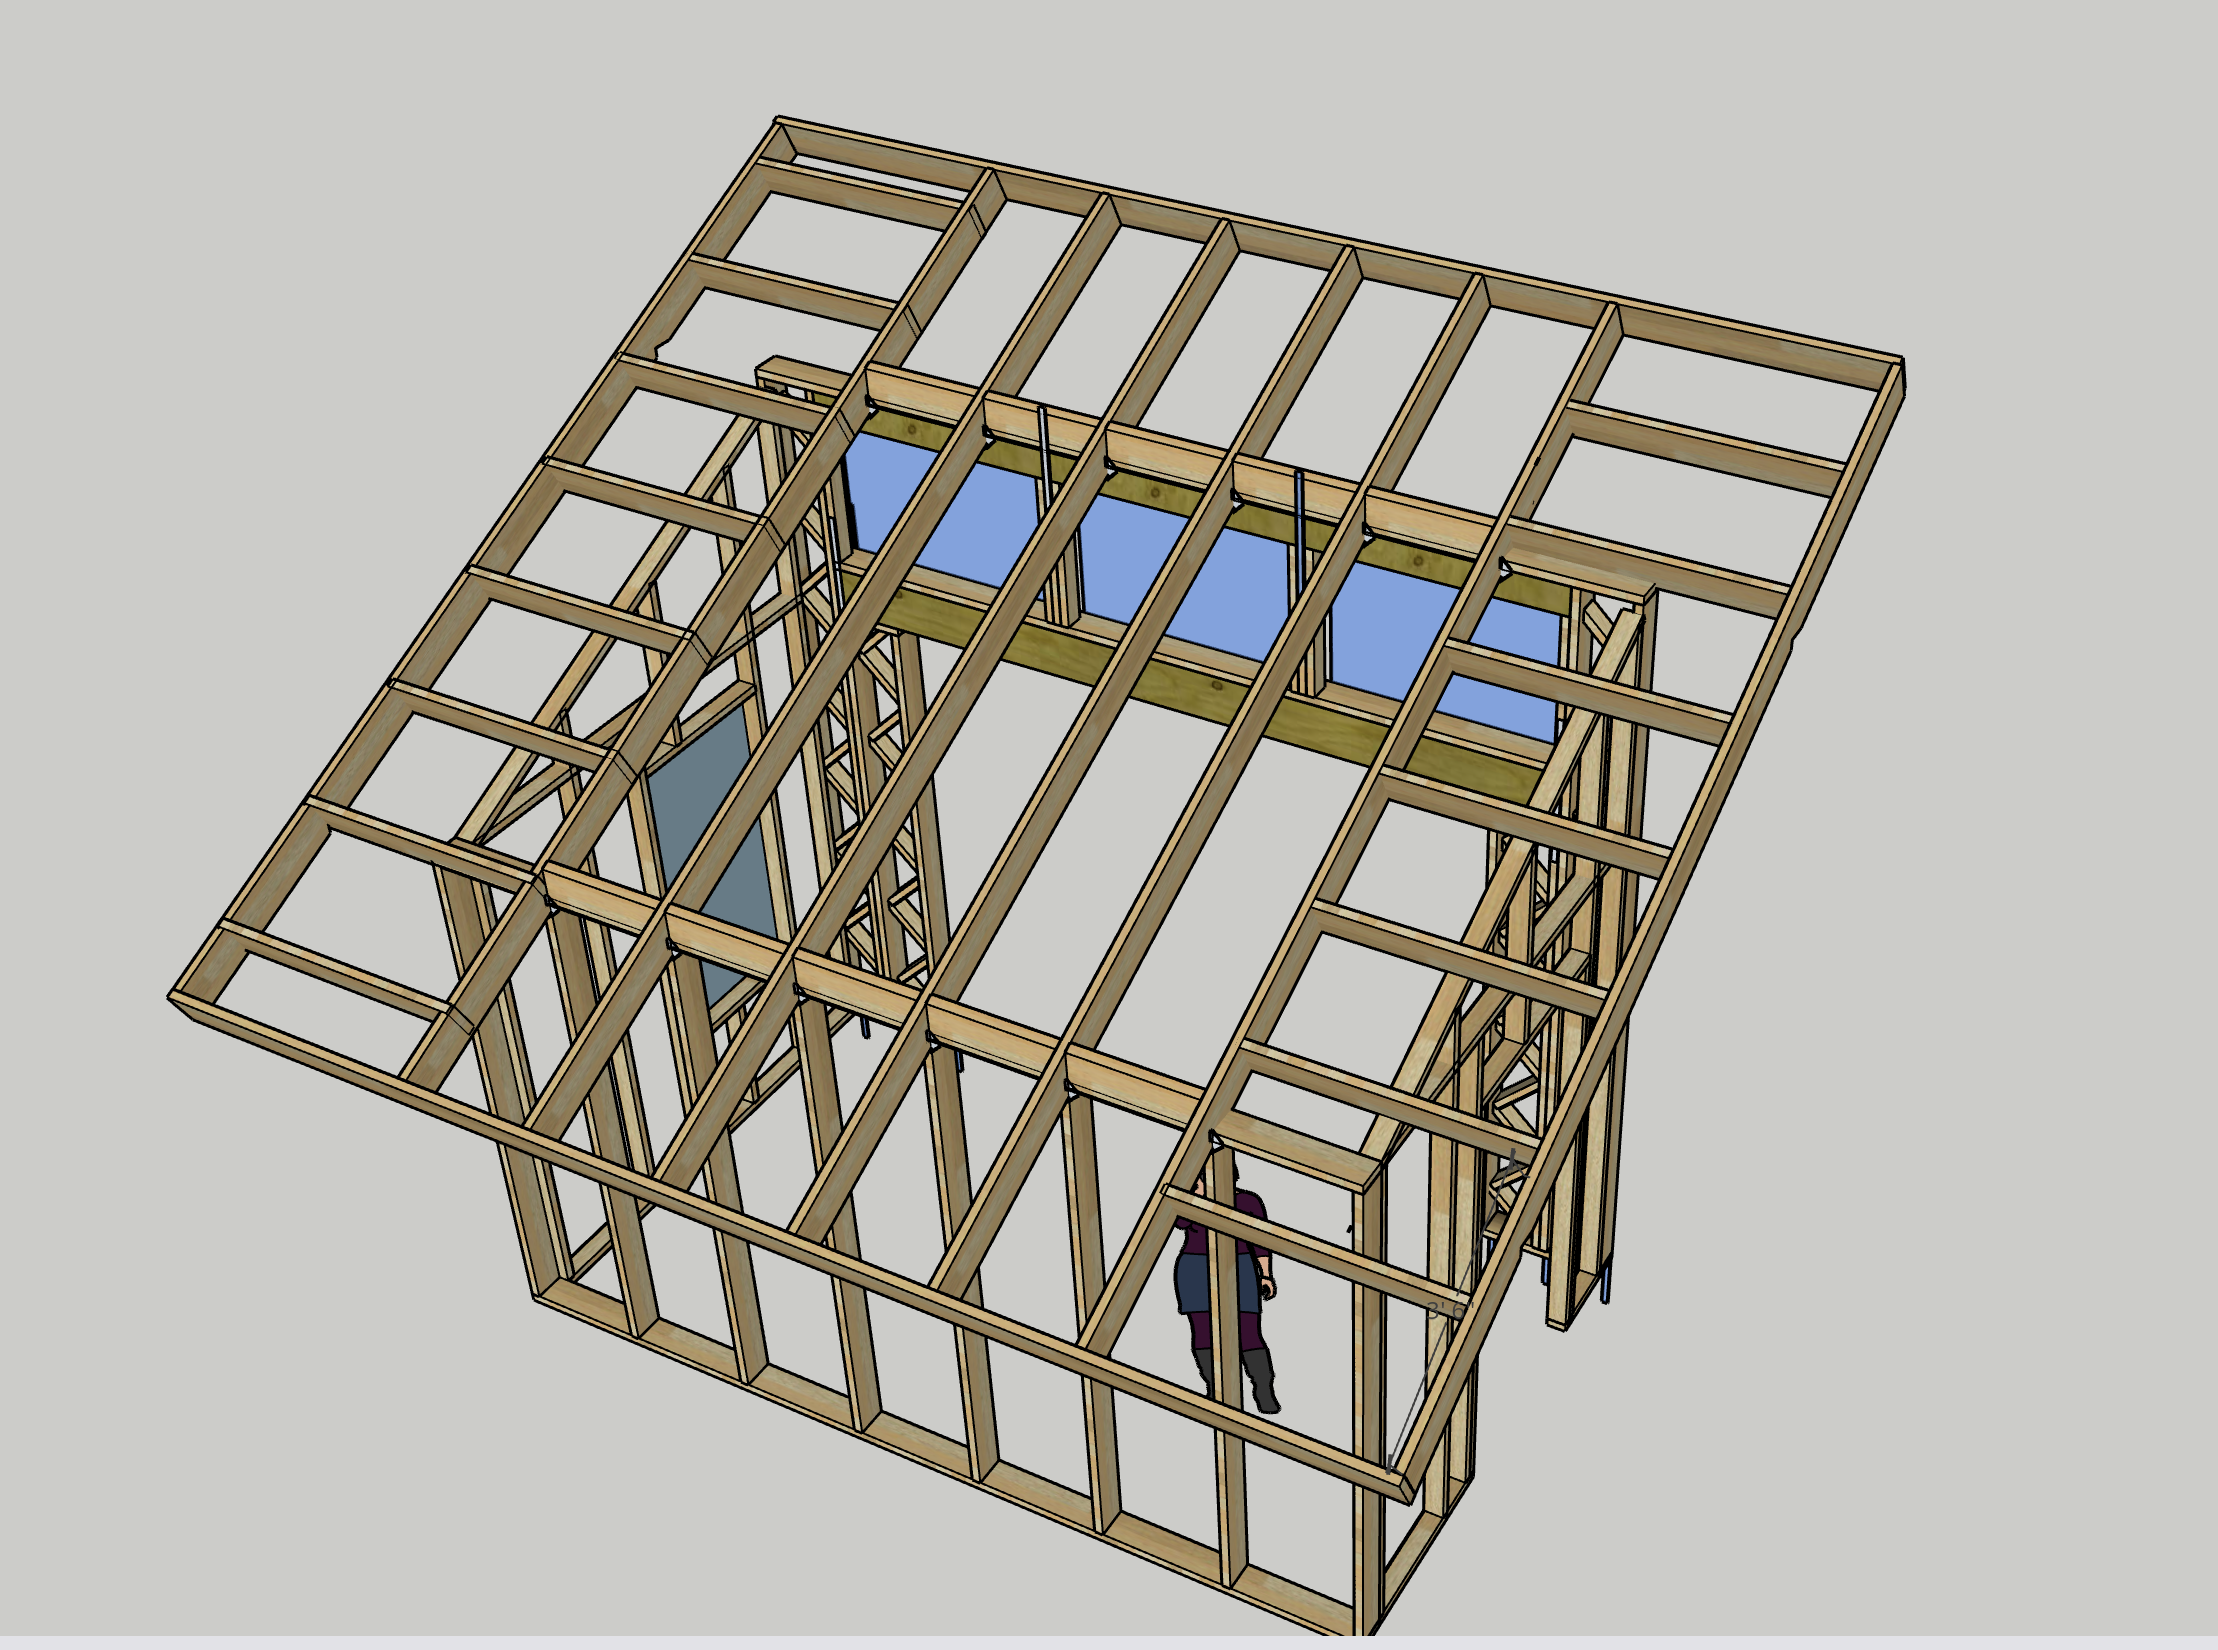 Shed / workshop framing design--is it too ambitious?-screen-shot-2020-04-26-10.18.25-am.png